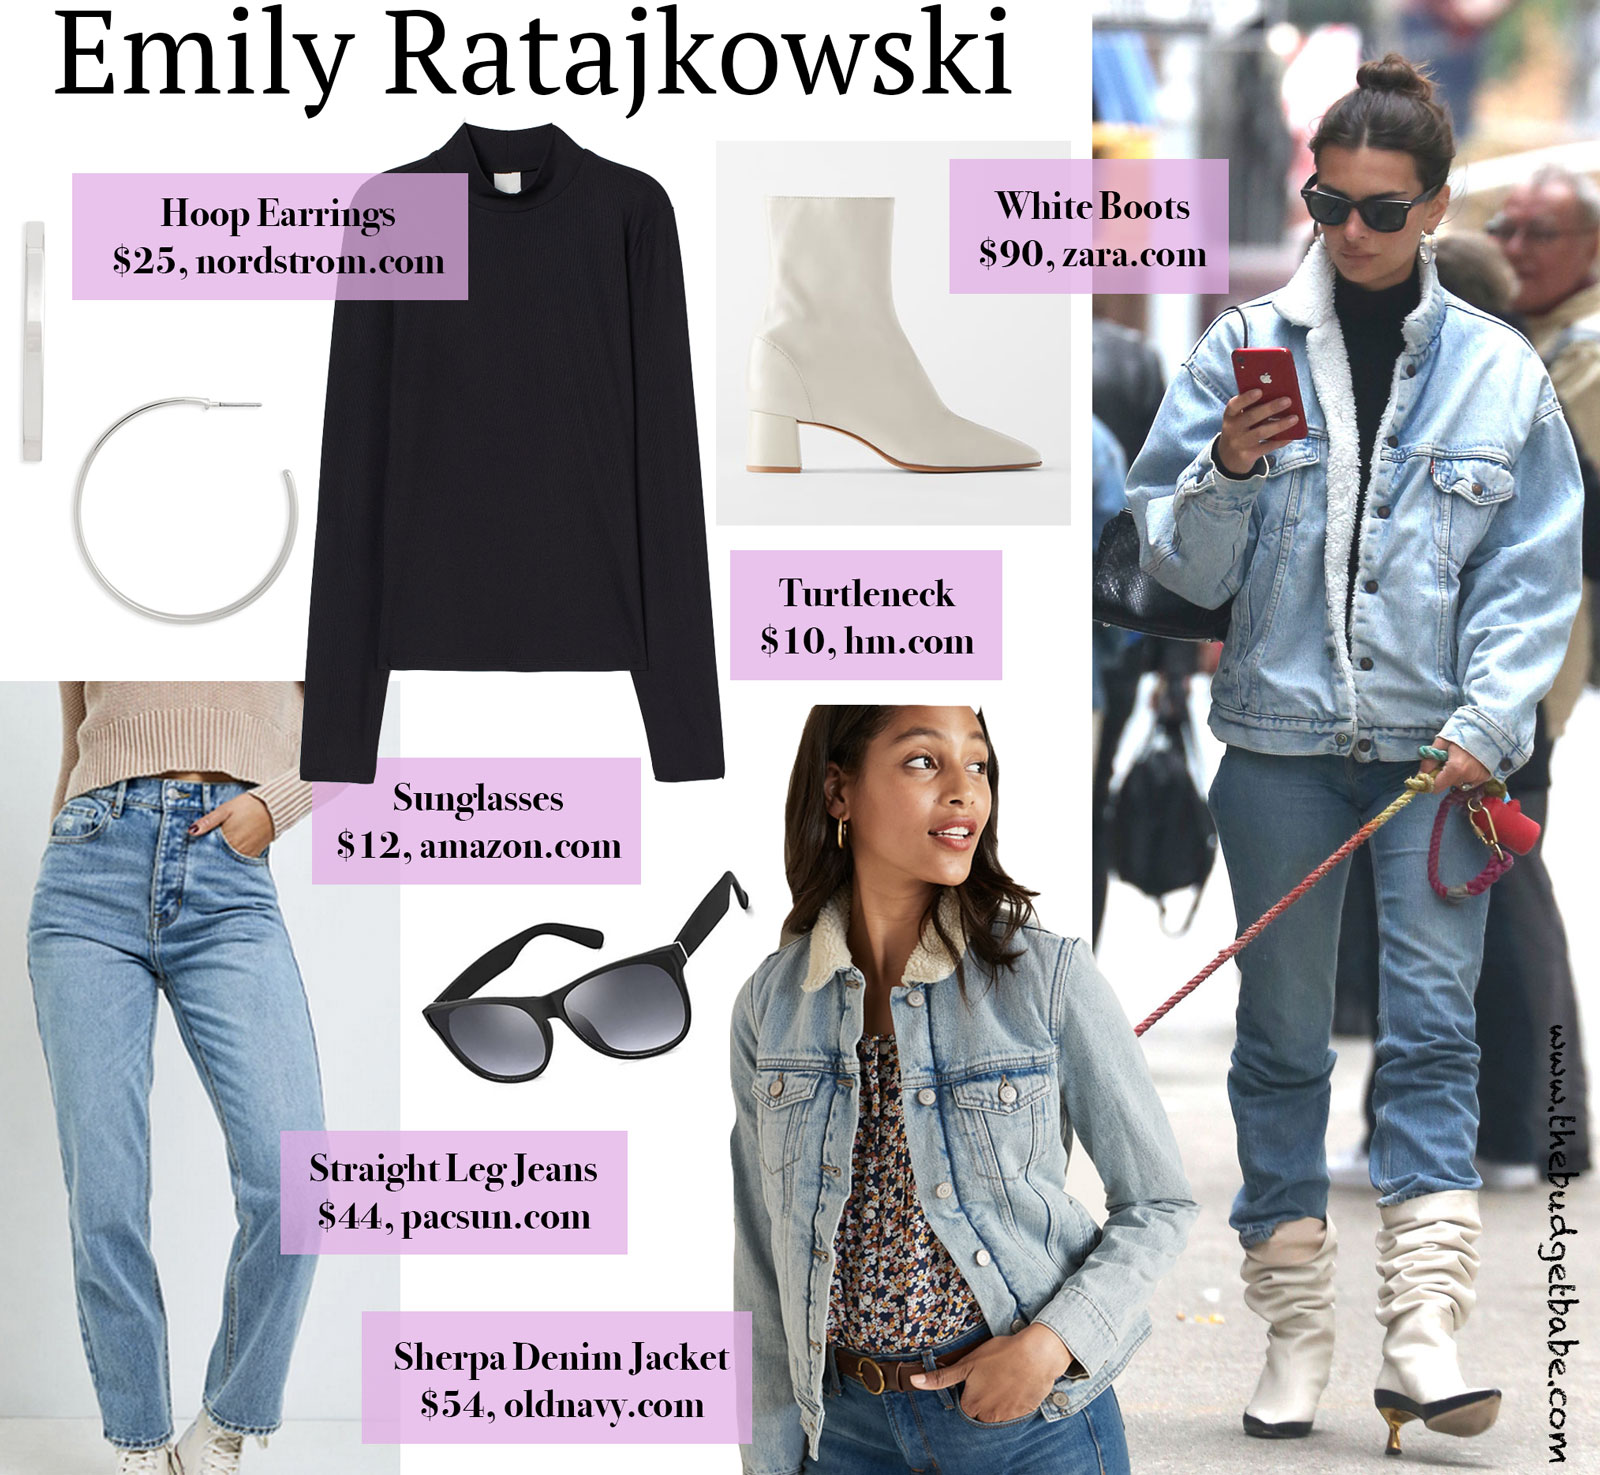 Emily Ratajkowski Sherpa Denim Look for Less